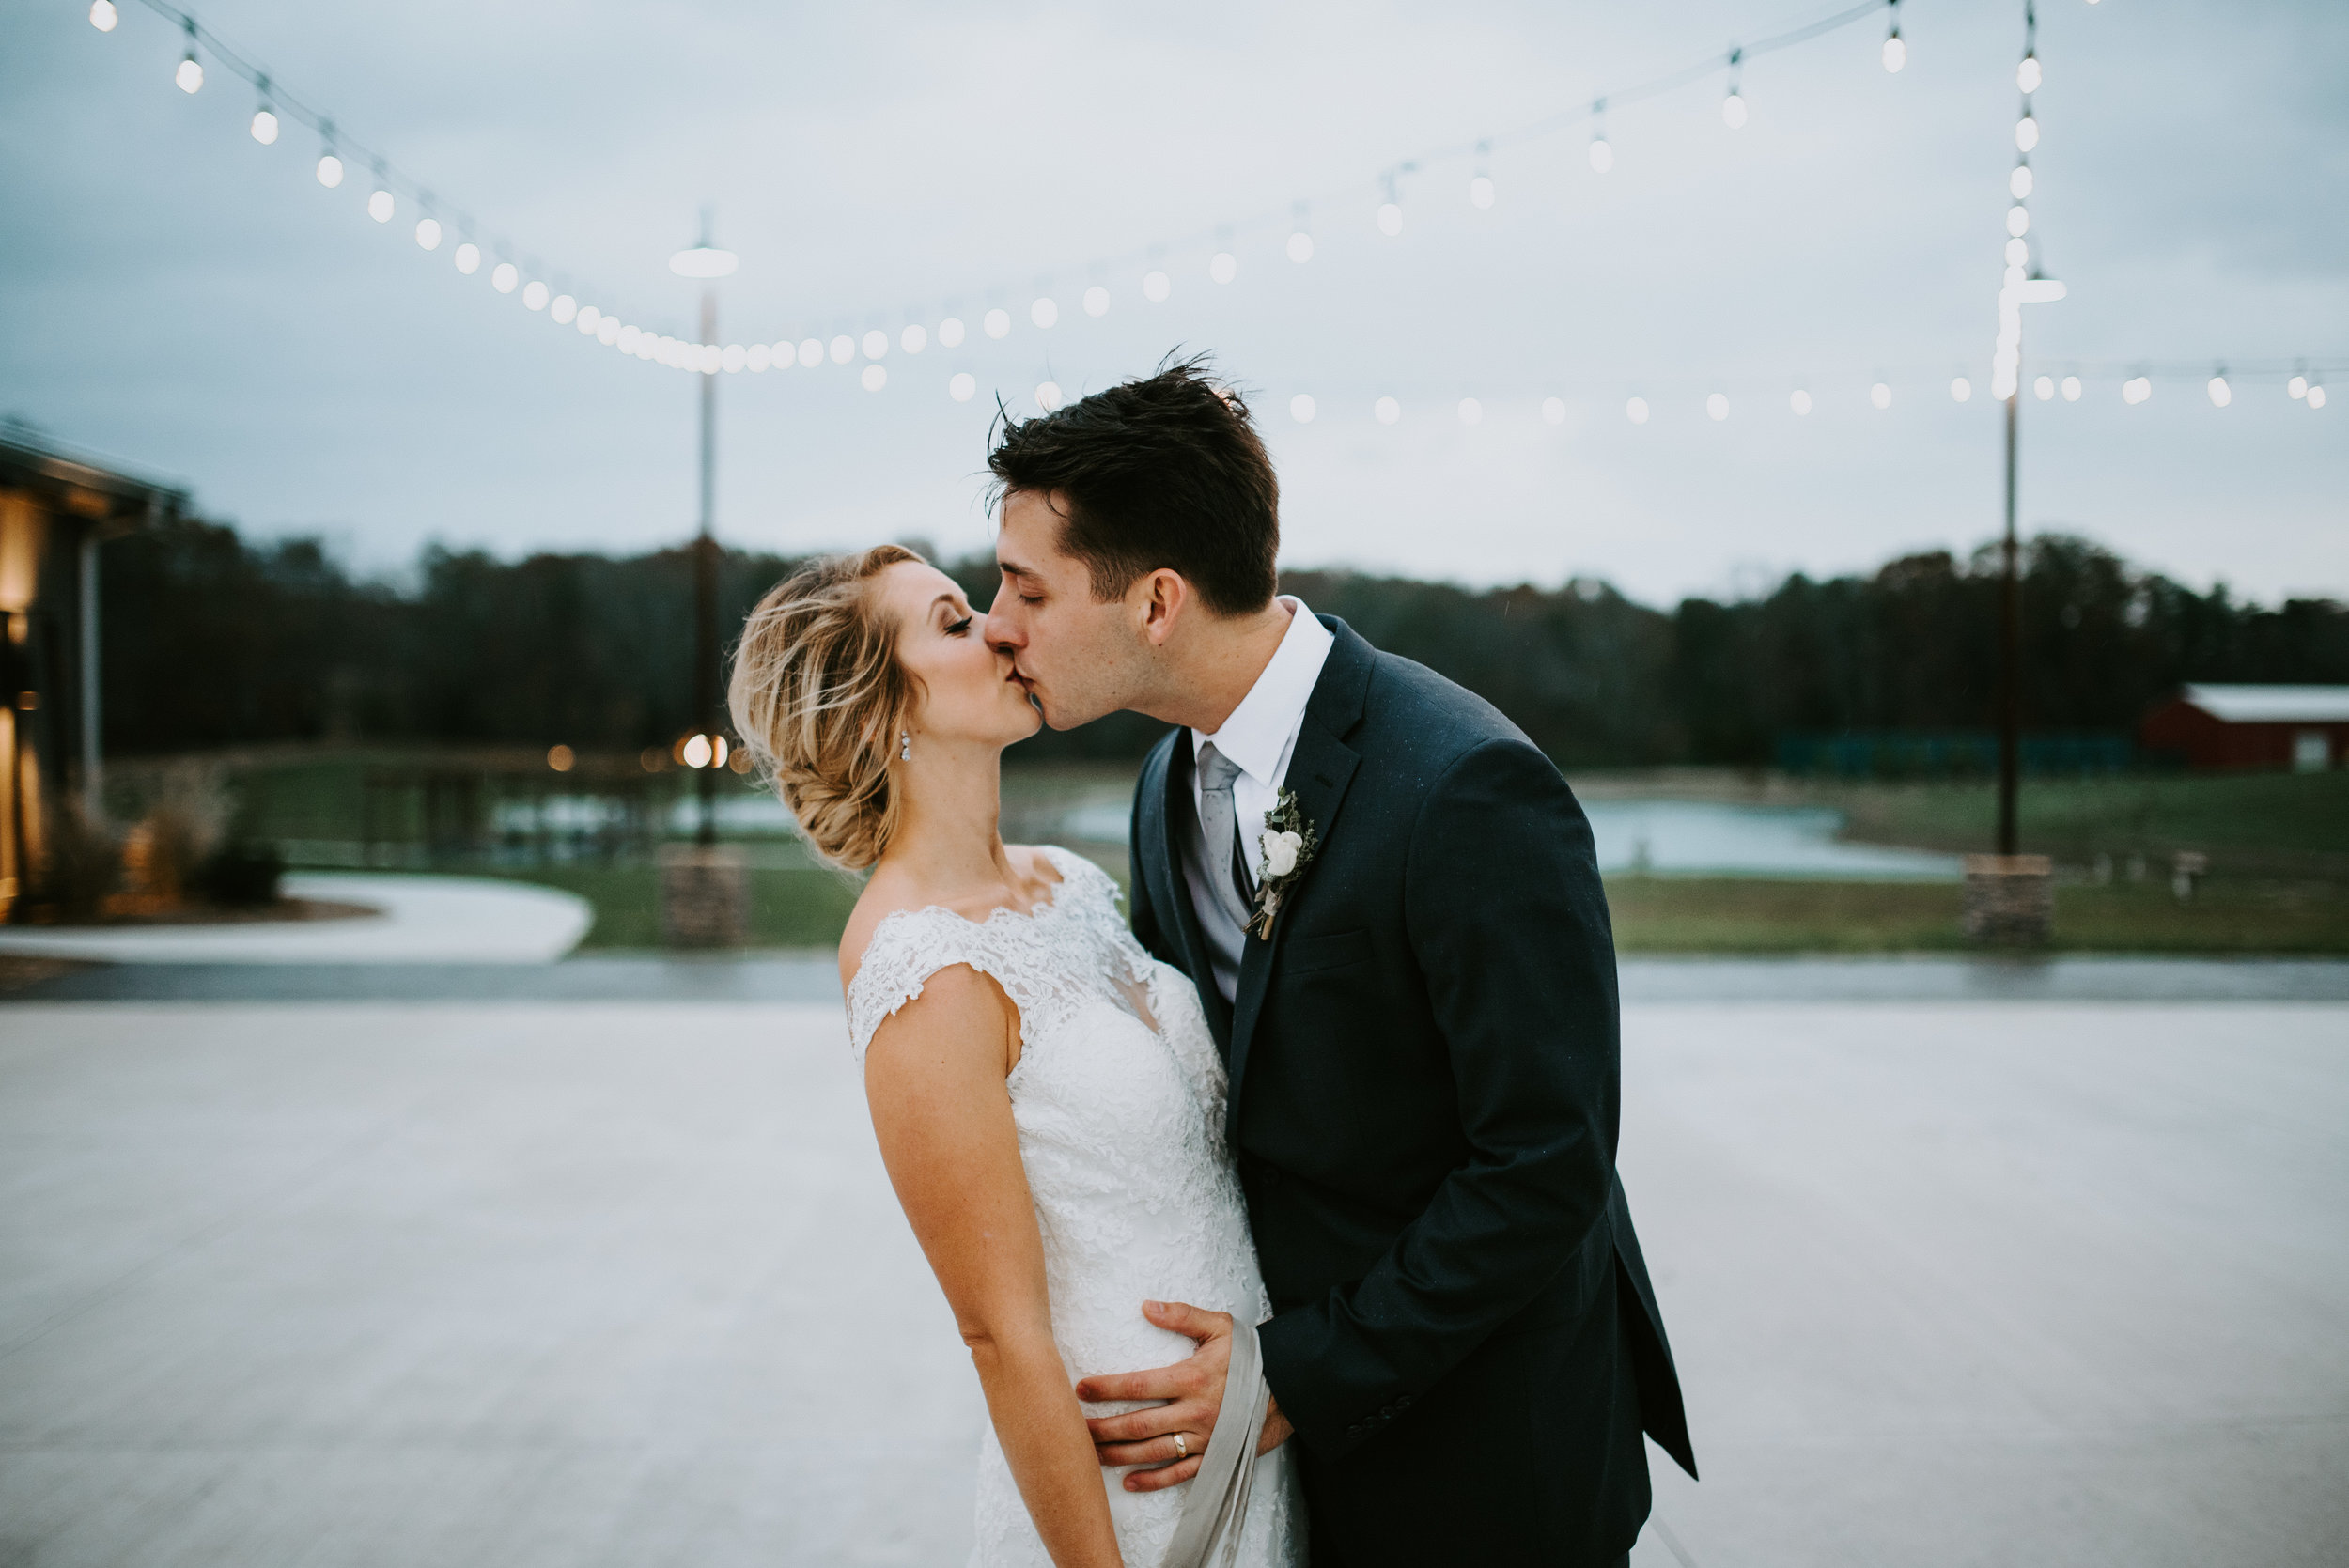 kissing in the rain under twinkle lights wedding picture bride and groom